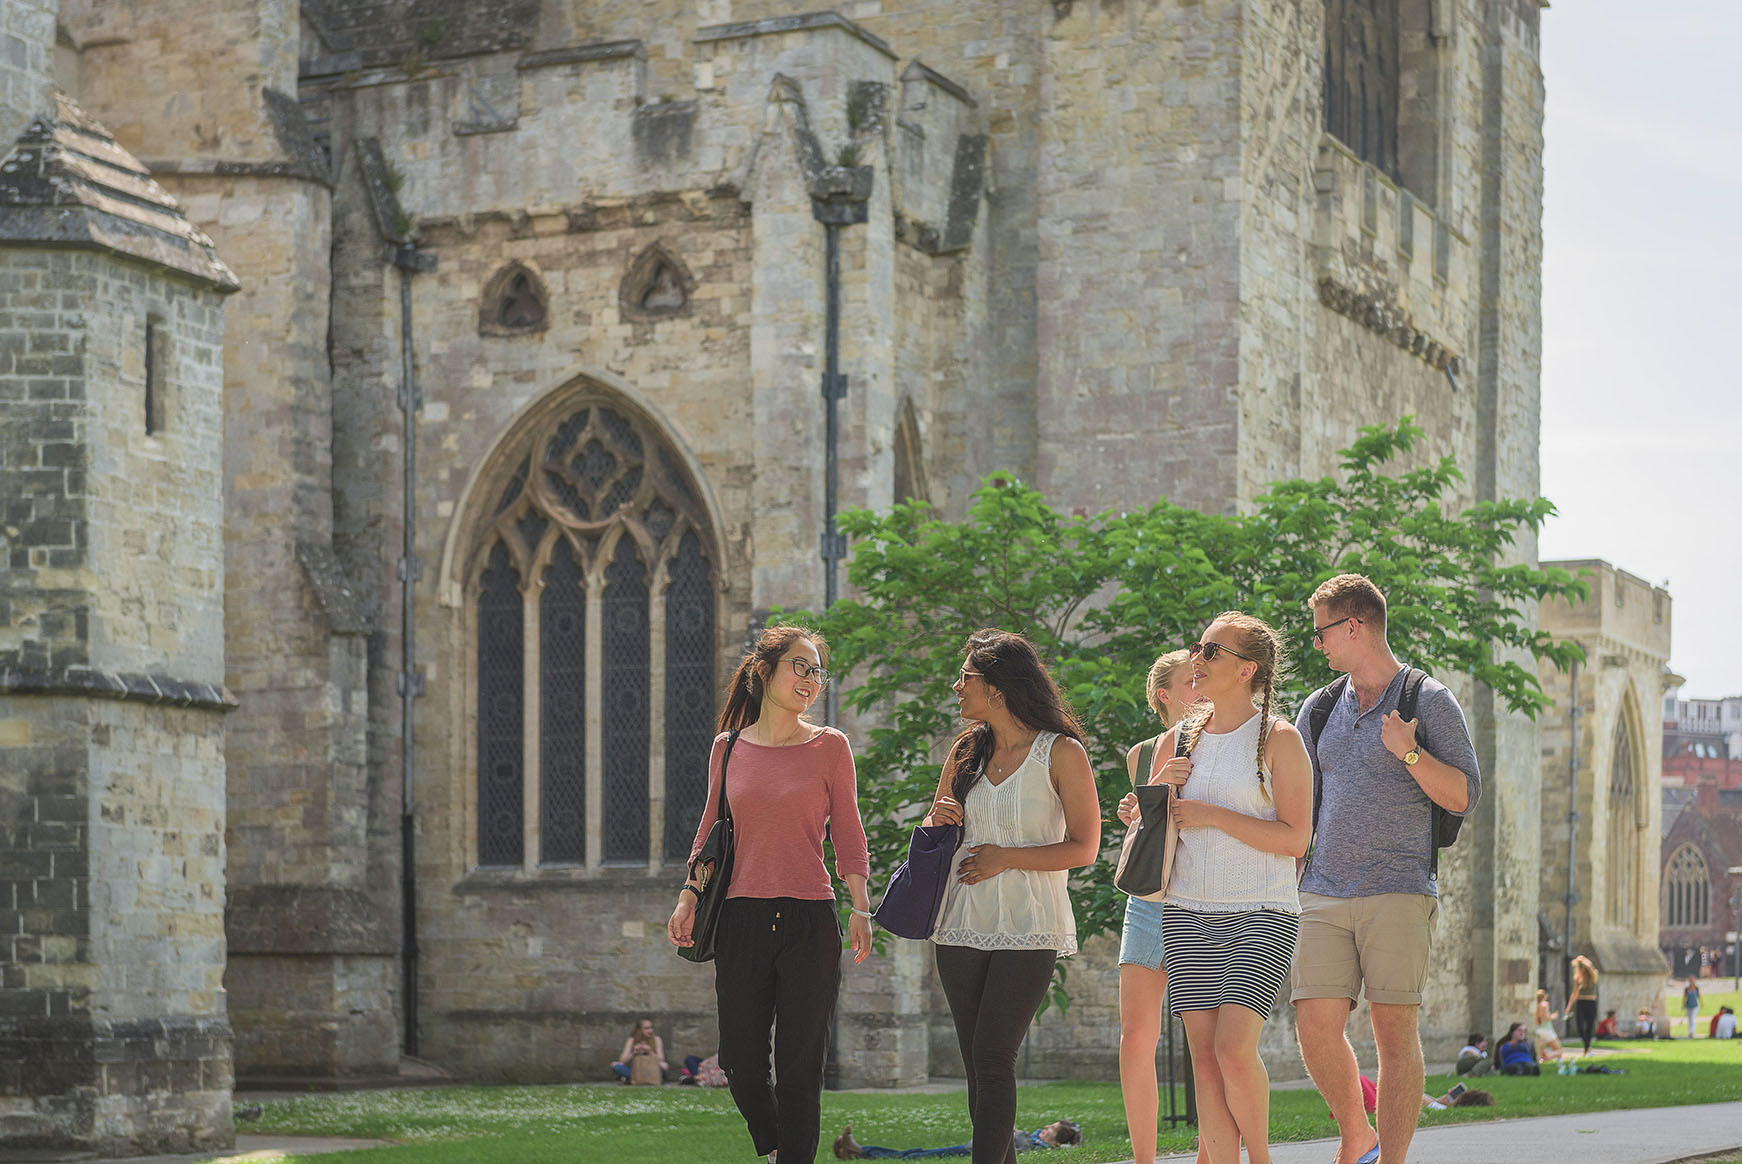 Students walking outside Exeter cathedral